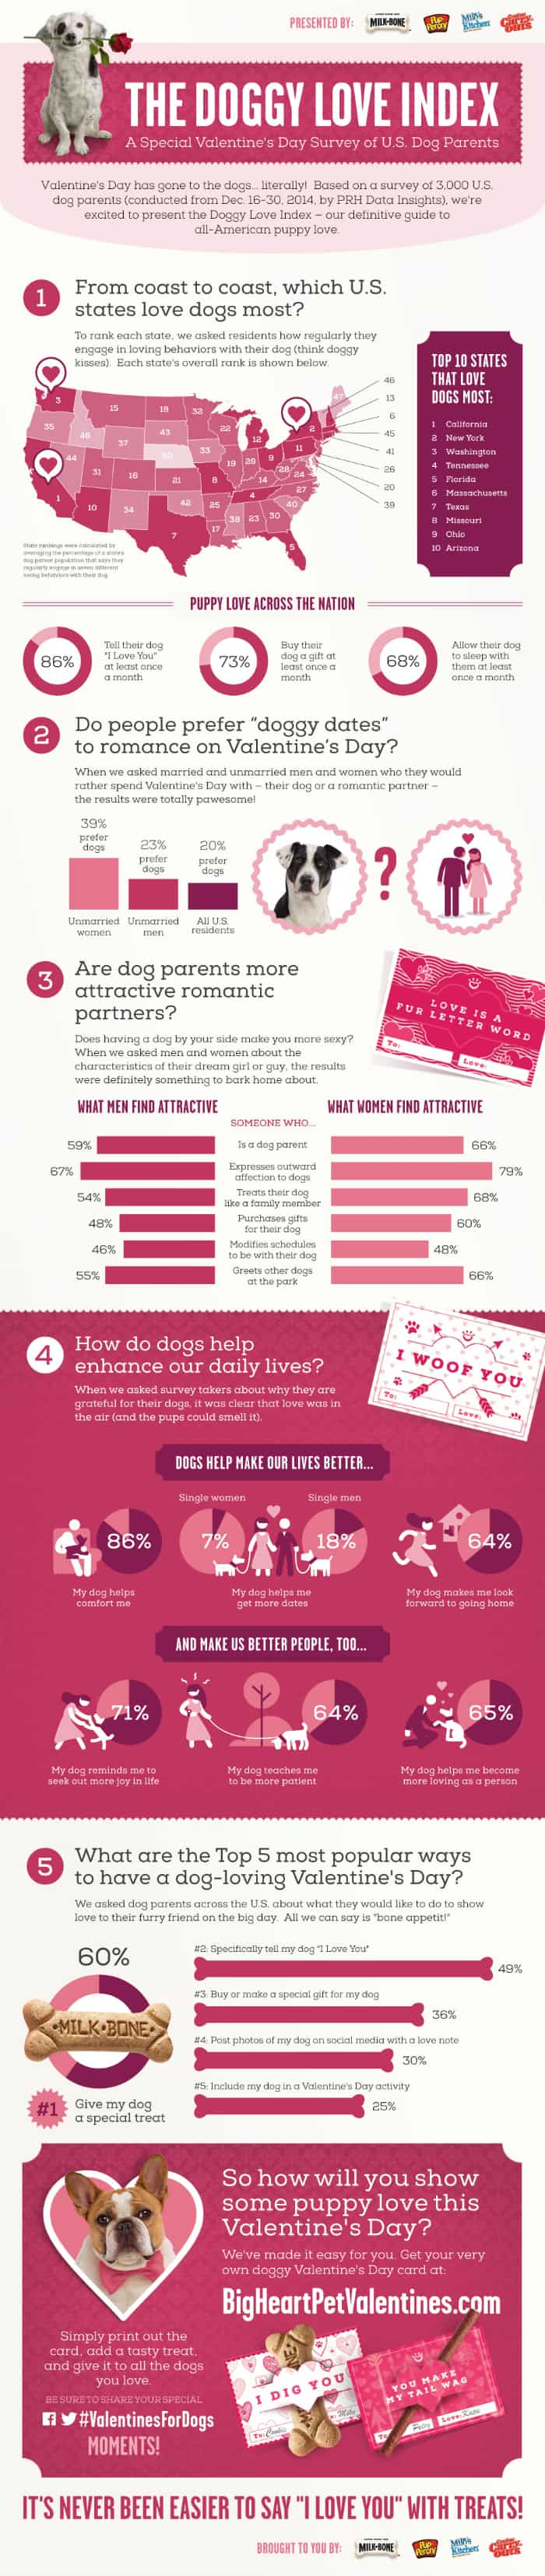 doggylove_infographic